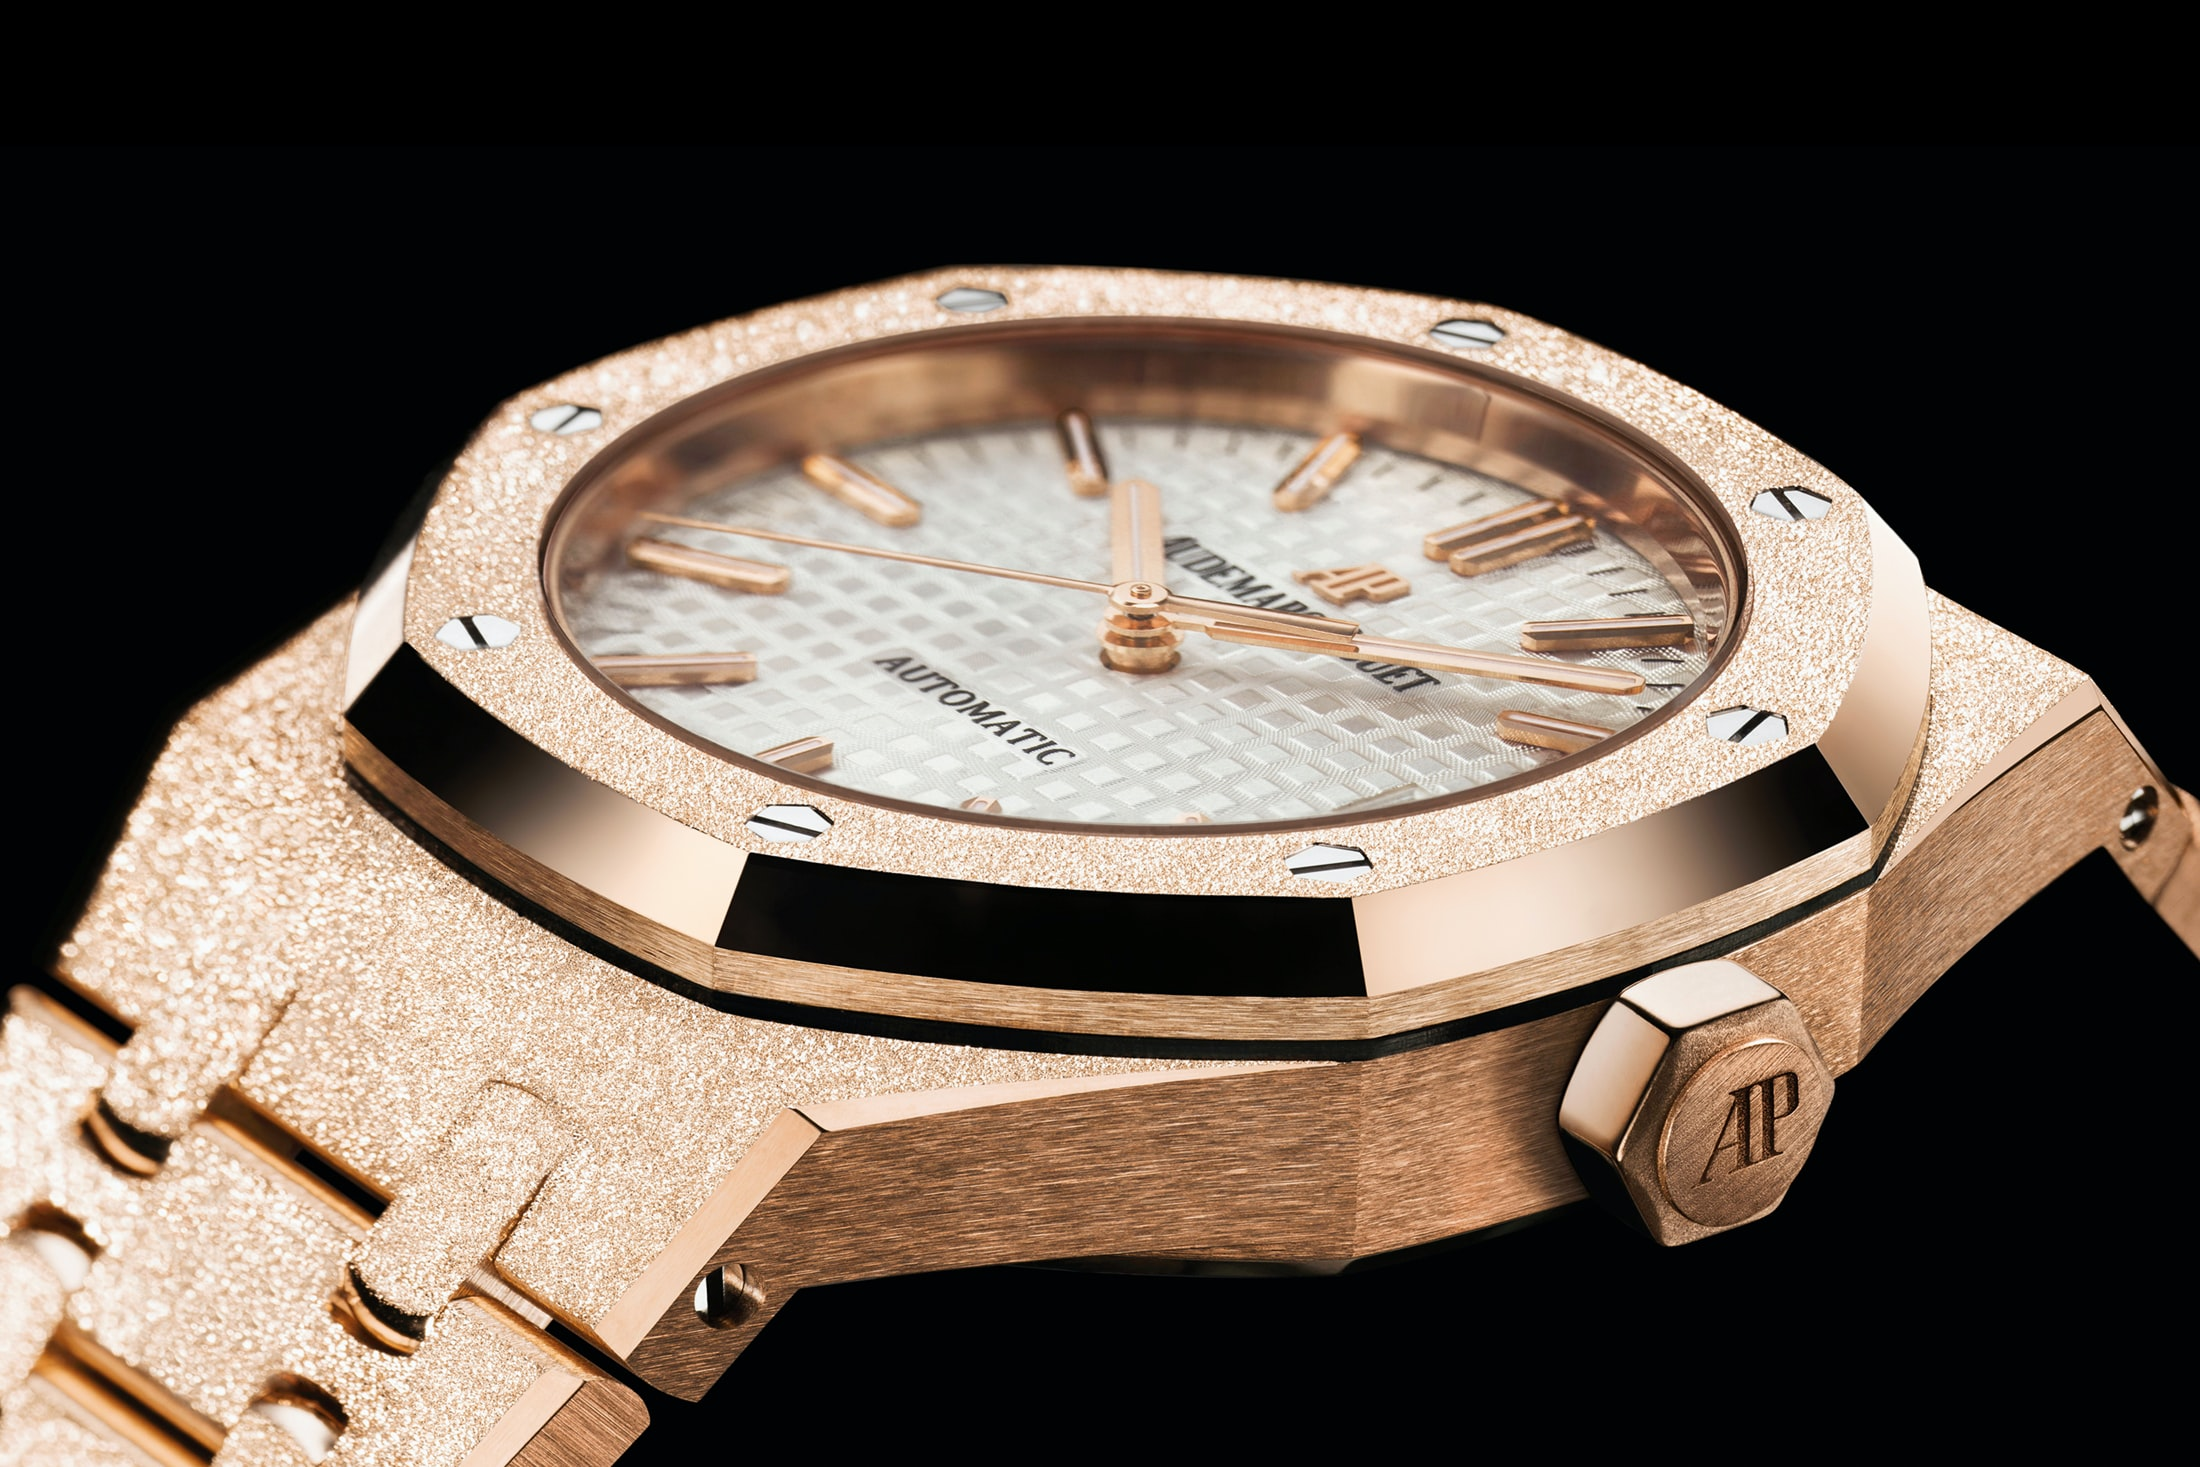 frosted rose gold royal oak aud Introducing: The New 40th Anniversary Frosted Gold Ladies' Royal Oak From Audemars Piguet Introducing: The New 40th Anniversary Frosted Gold Ladies' Royal Oak From Audemars Piguet ap lede2